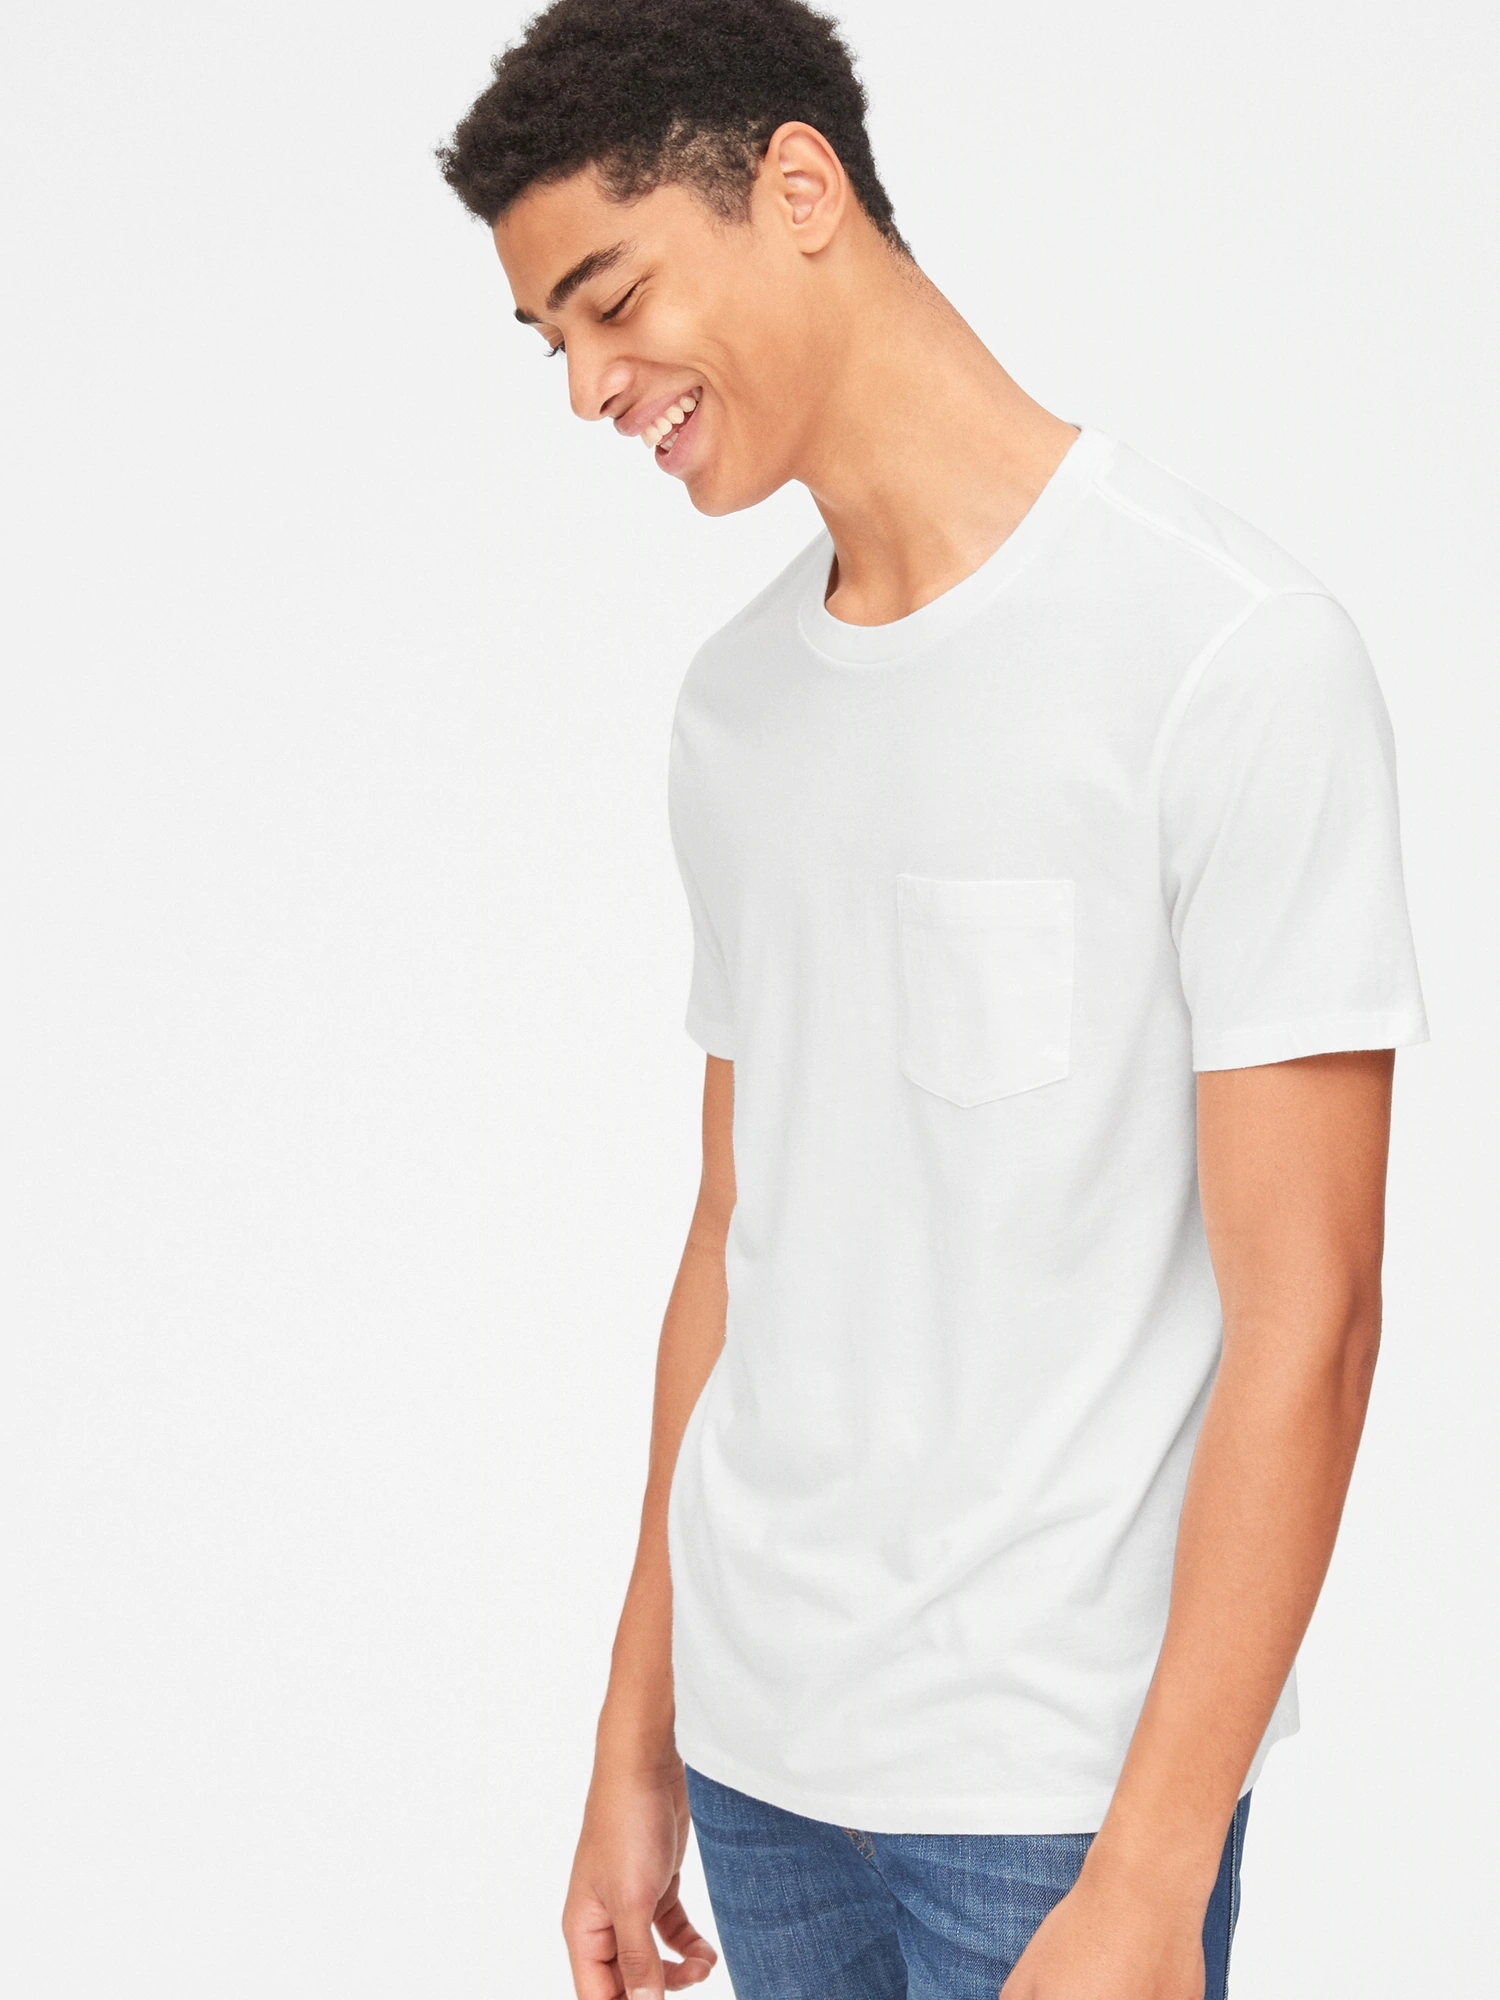 Tričko pocket t-shirt (1)